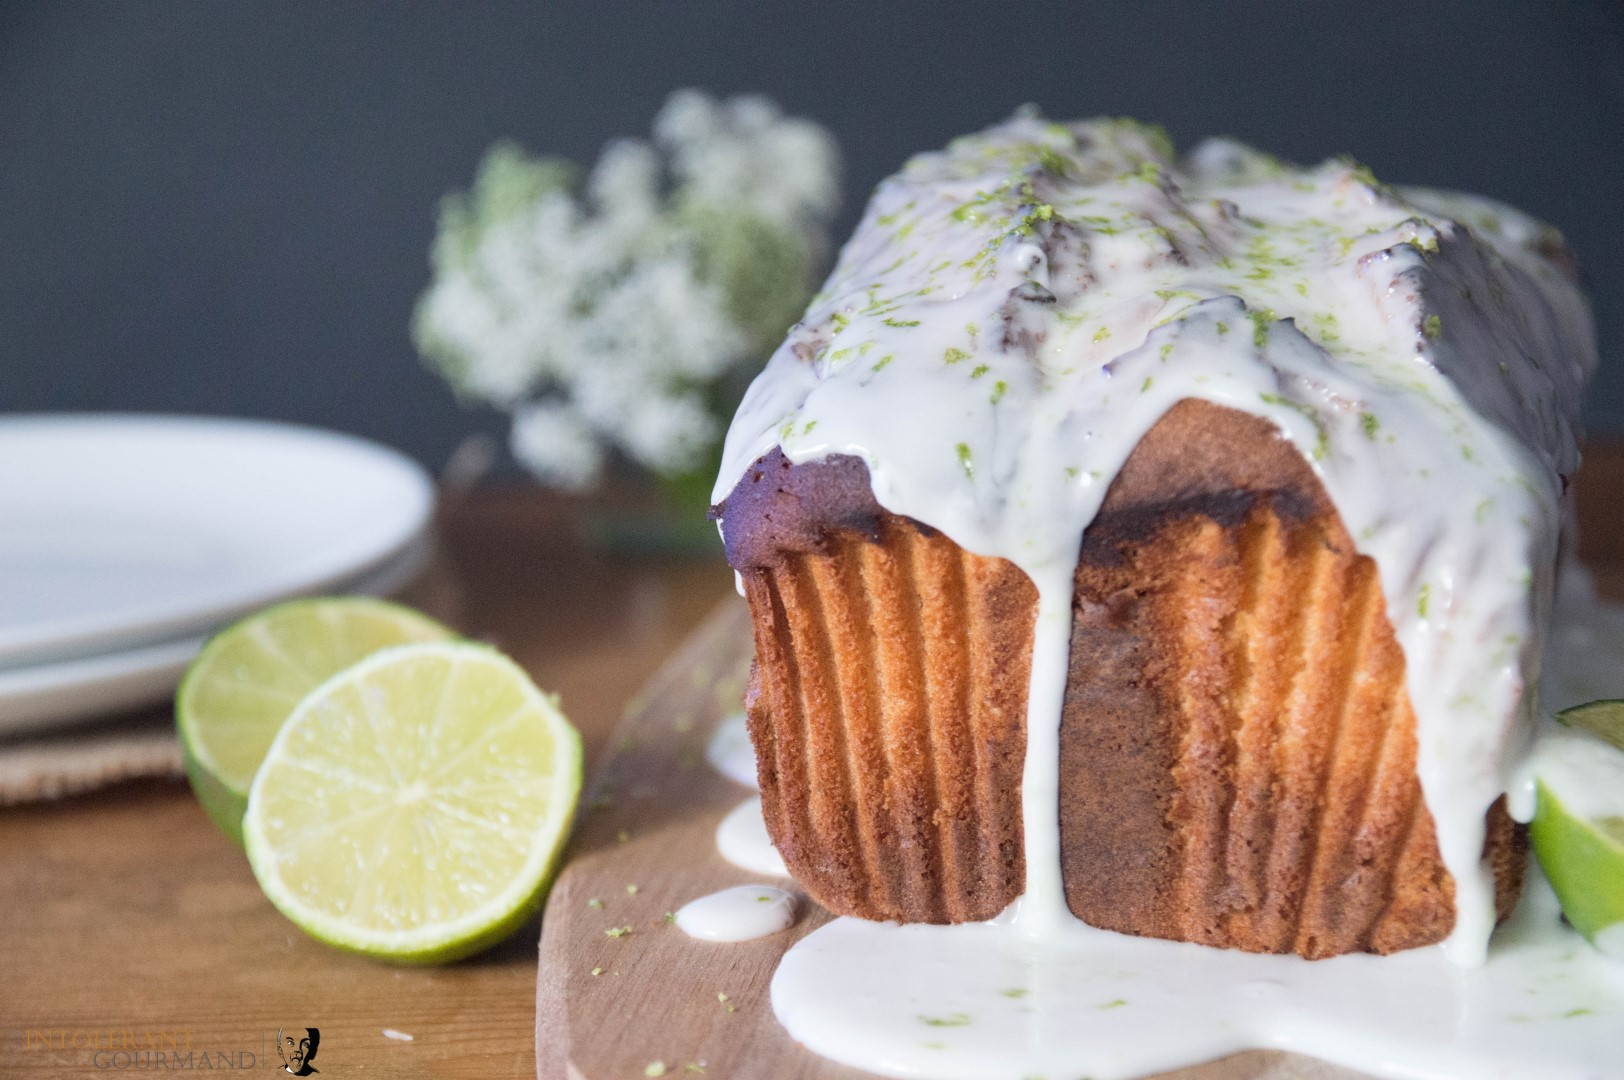 Gin and Tonic Cake - gluten-free, dairy-free and the perfect cake for any celebration! www.intolerantgourmand.com